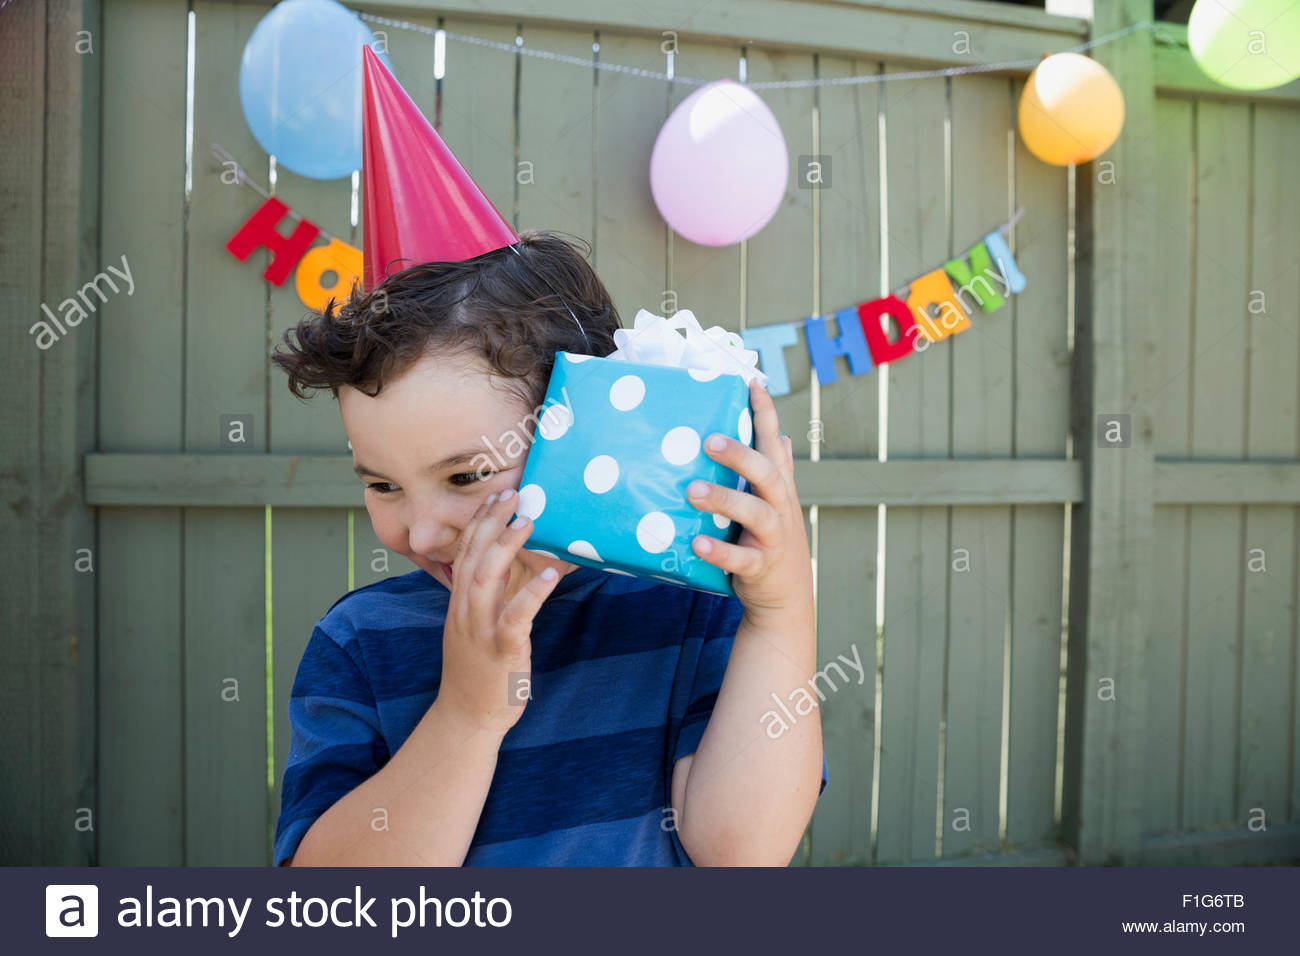 Boy wearing birthday party hat shaking wrapped gift - Stock Image